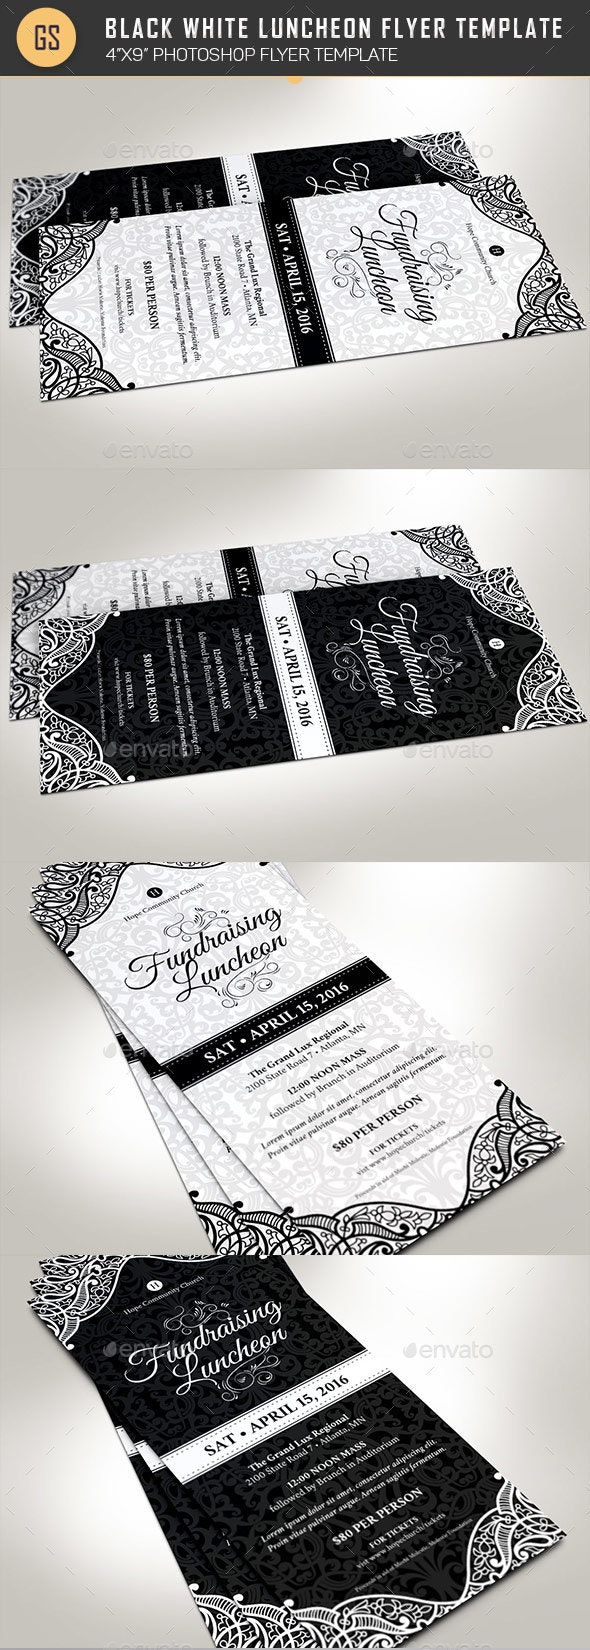 Black White Luncheon Flyer Template - Events Flyers